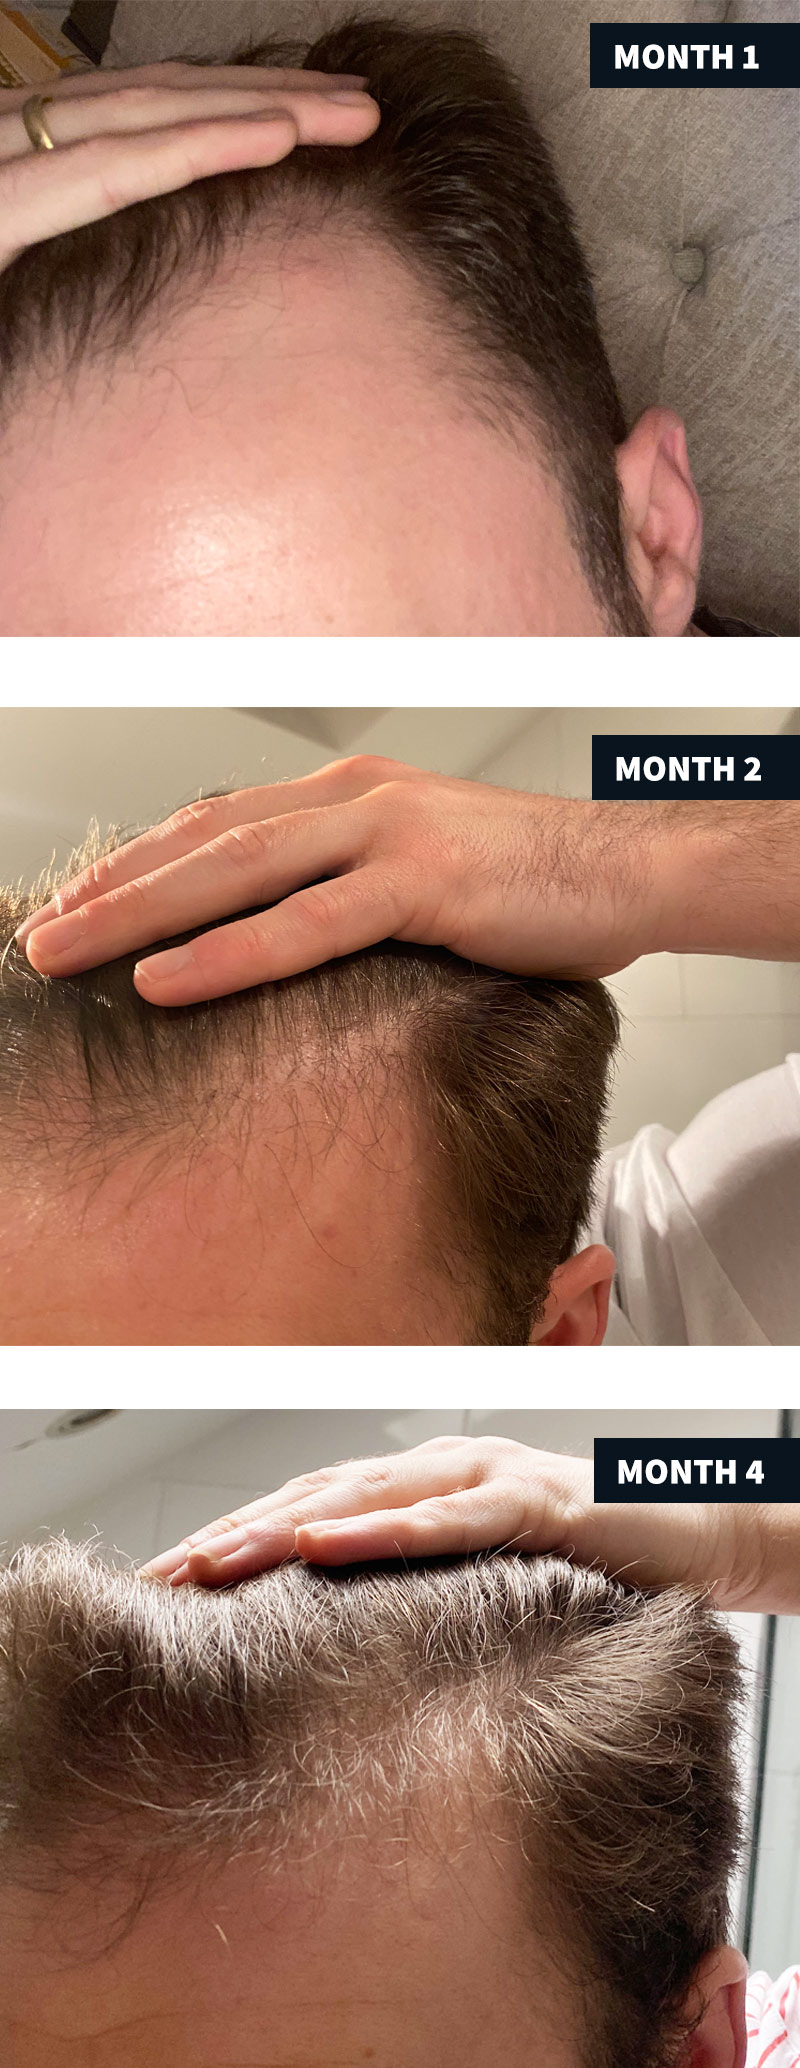 Hair follicle neogenesis before and afters